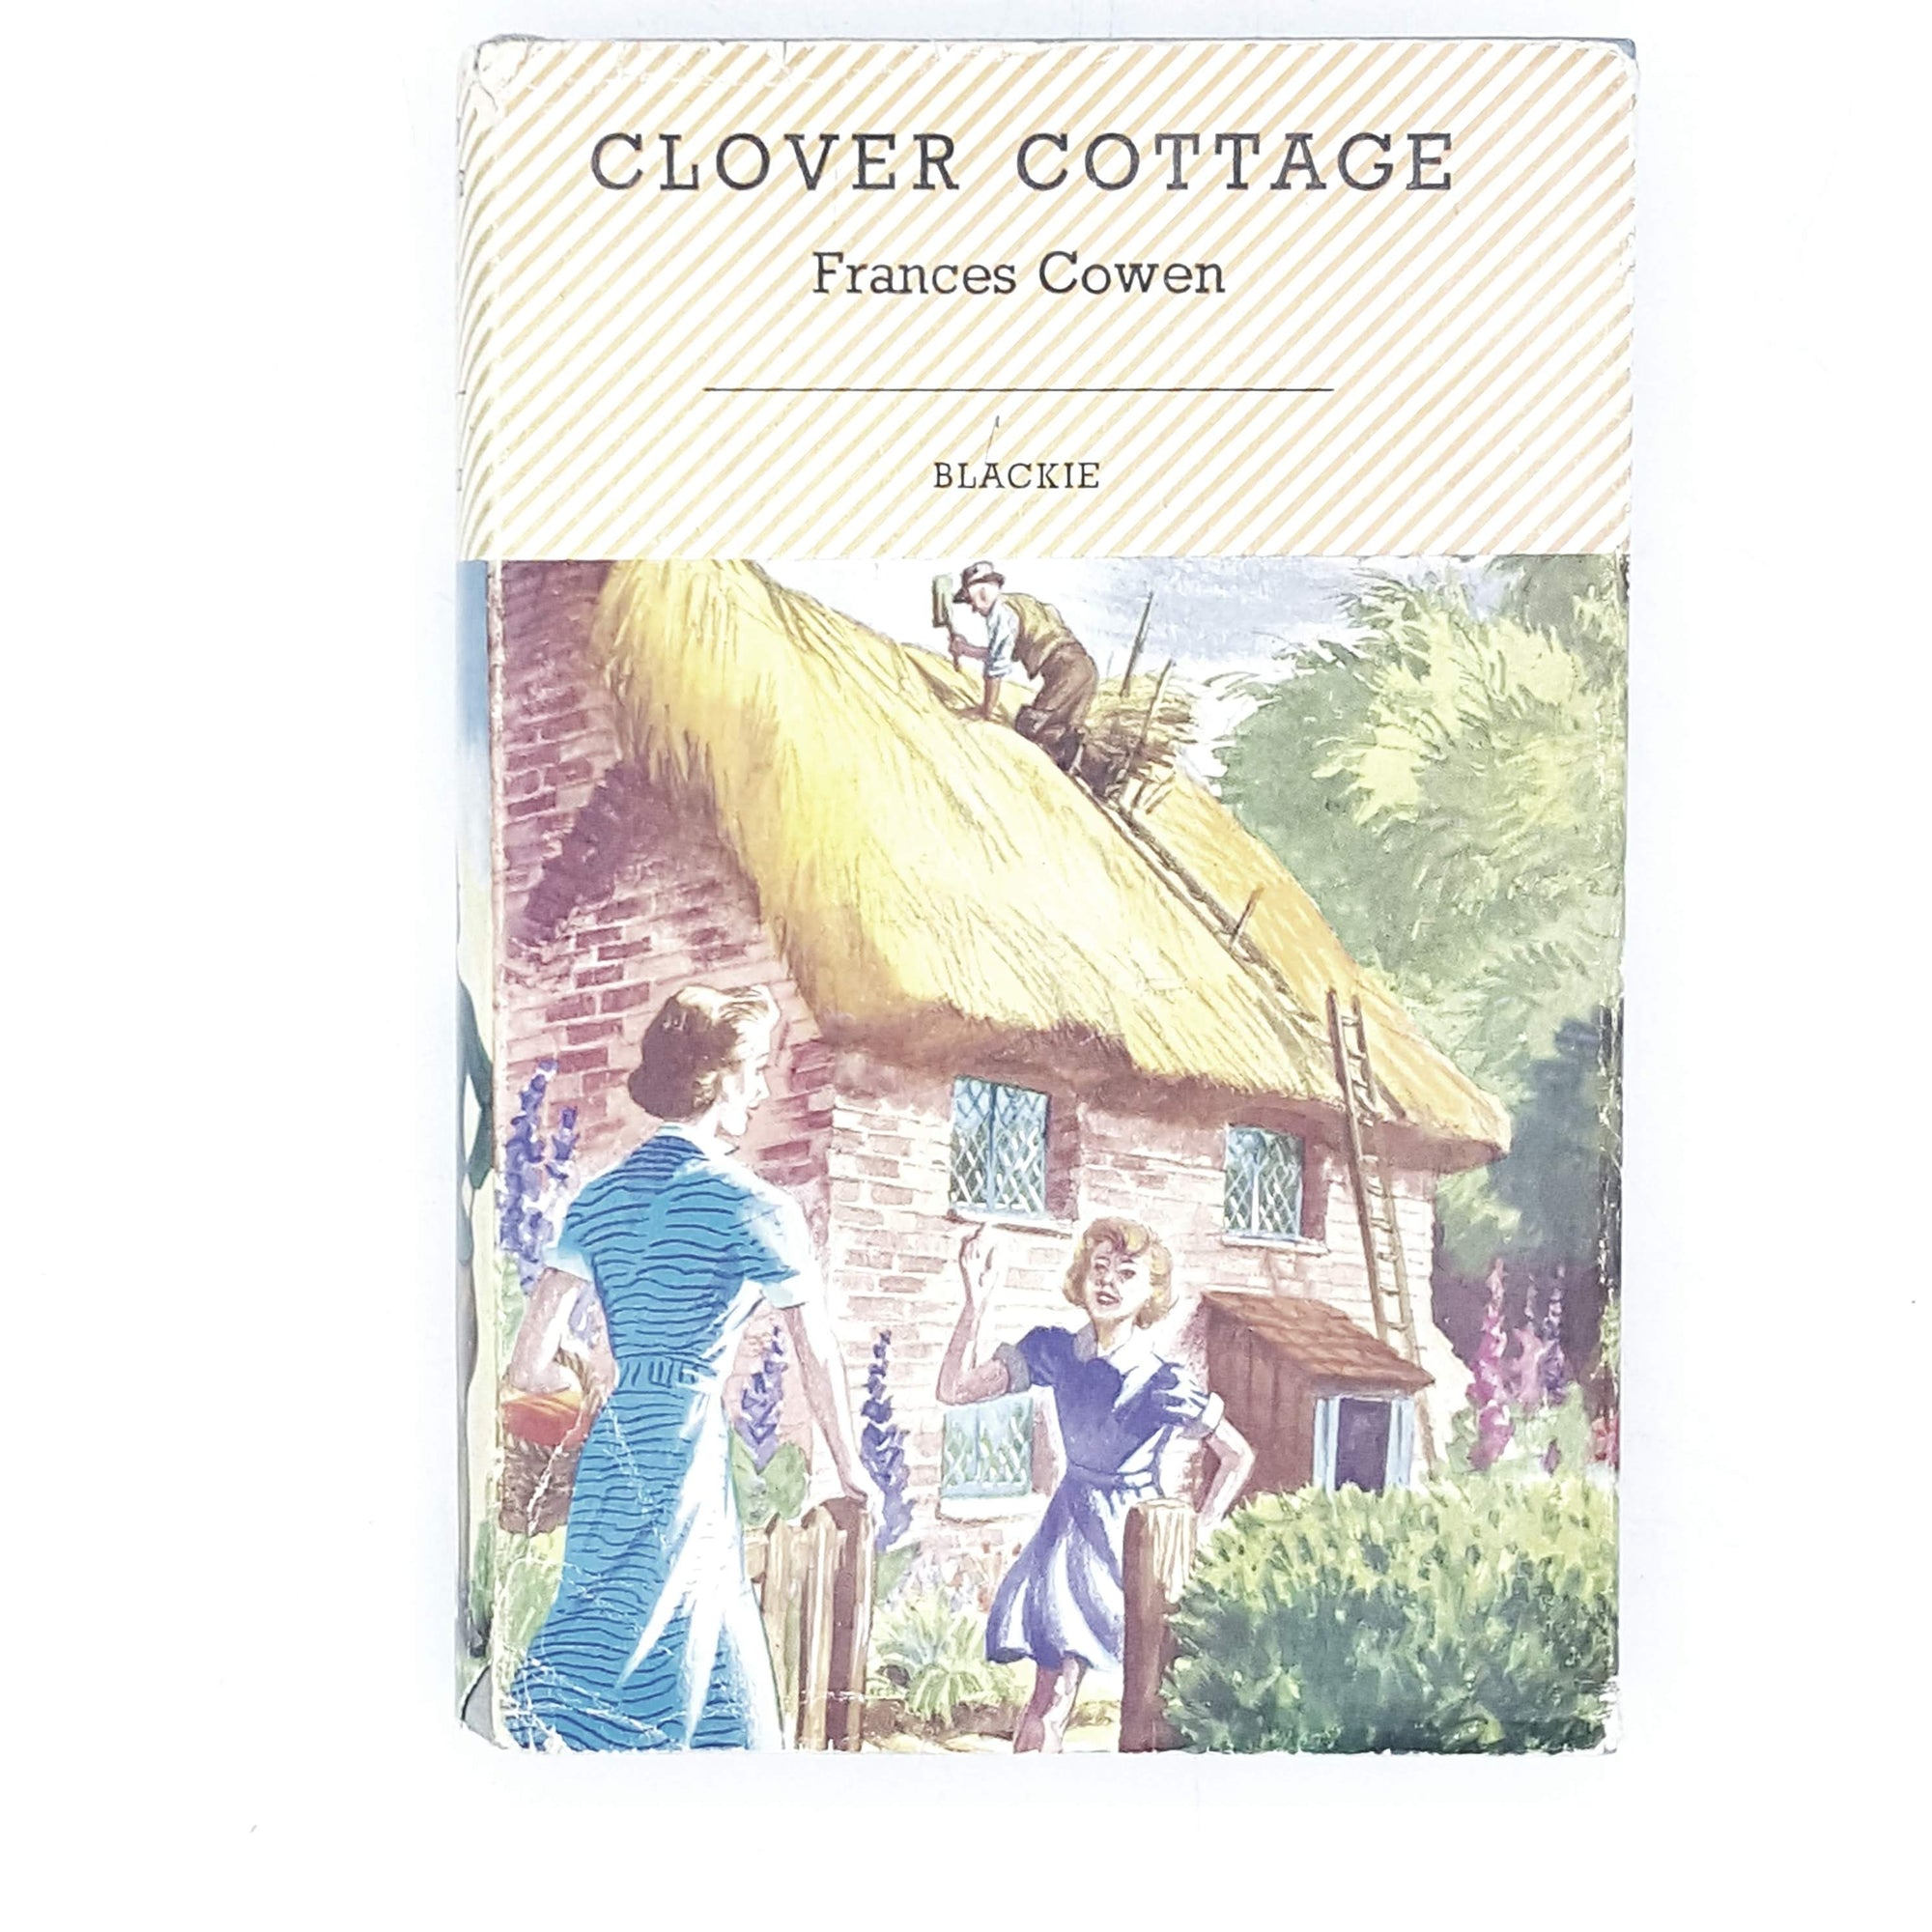 First Edition Clover Cottage by Frances Cowen 1958